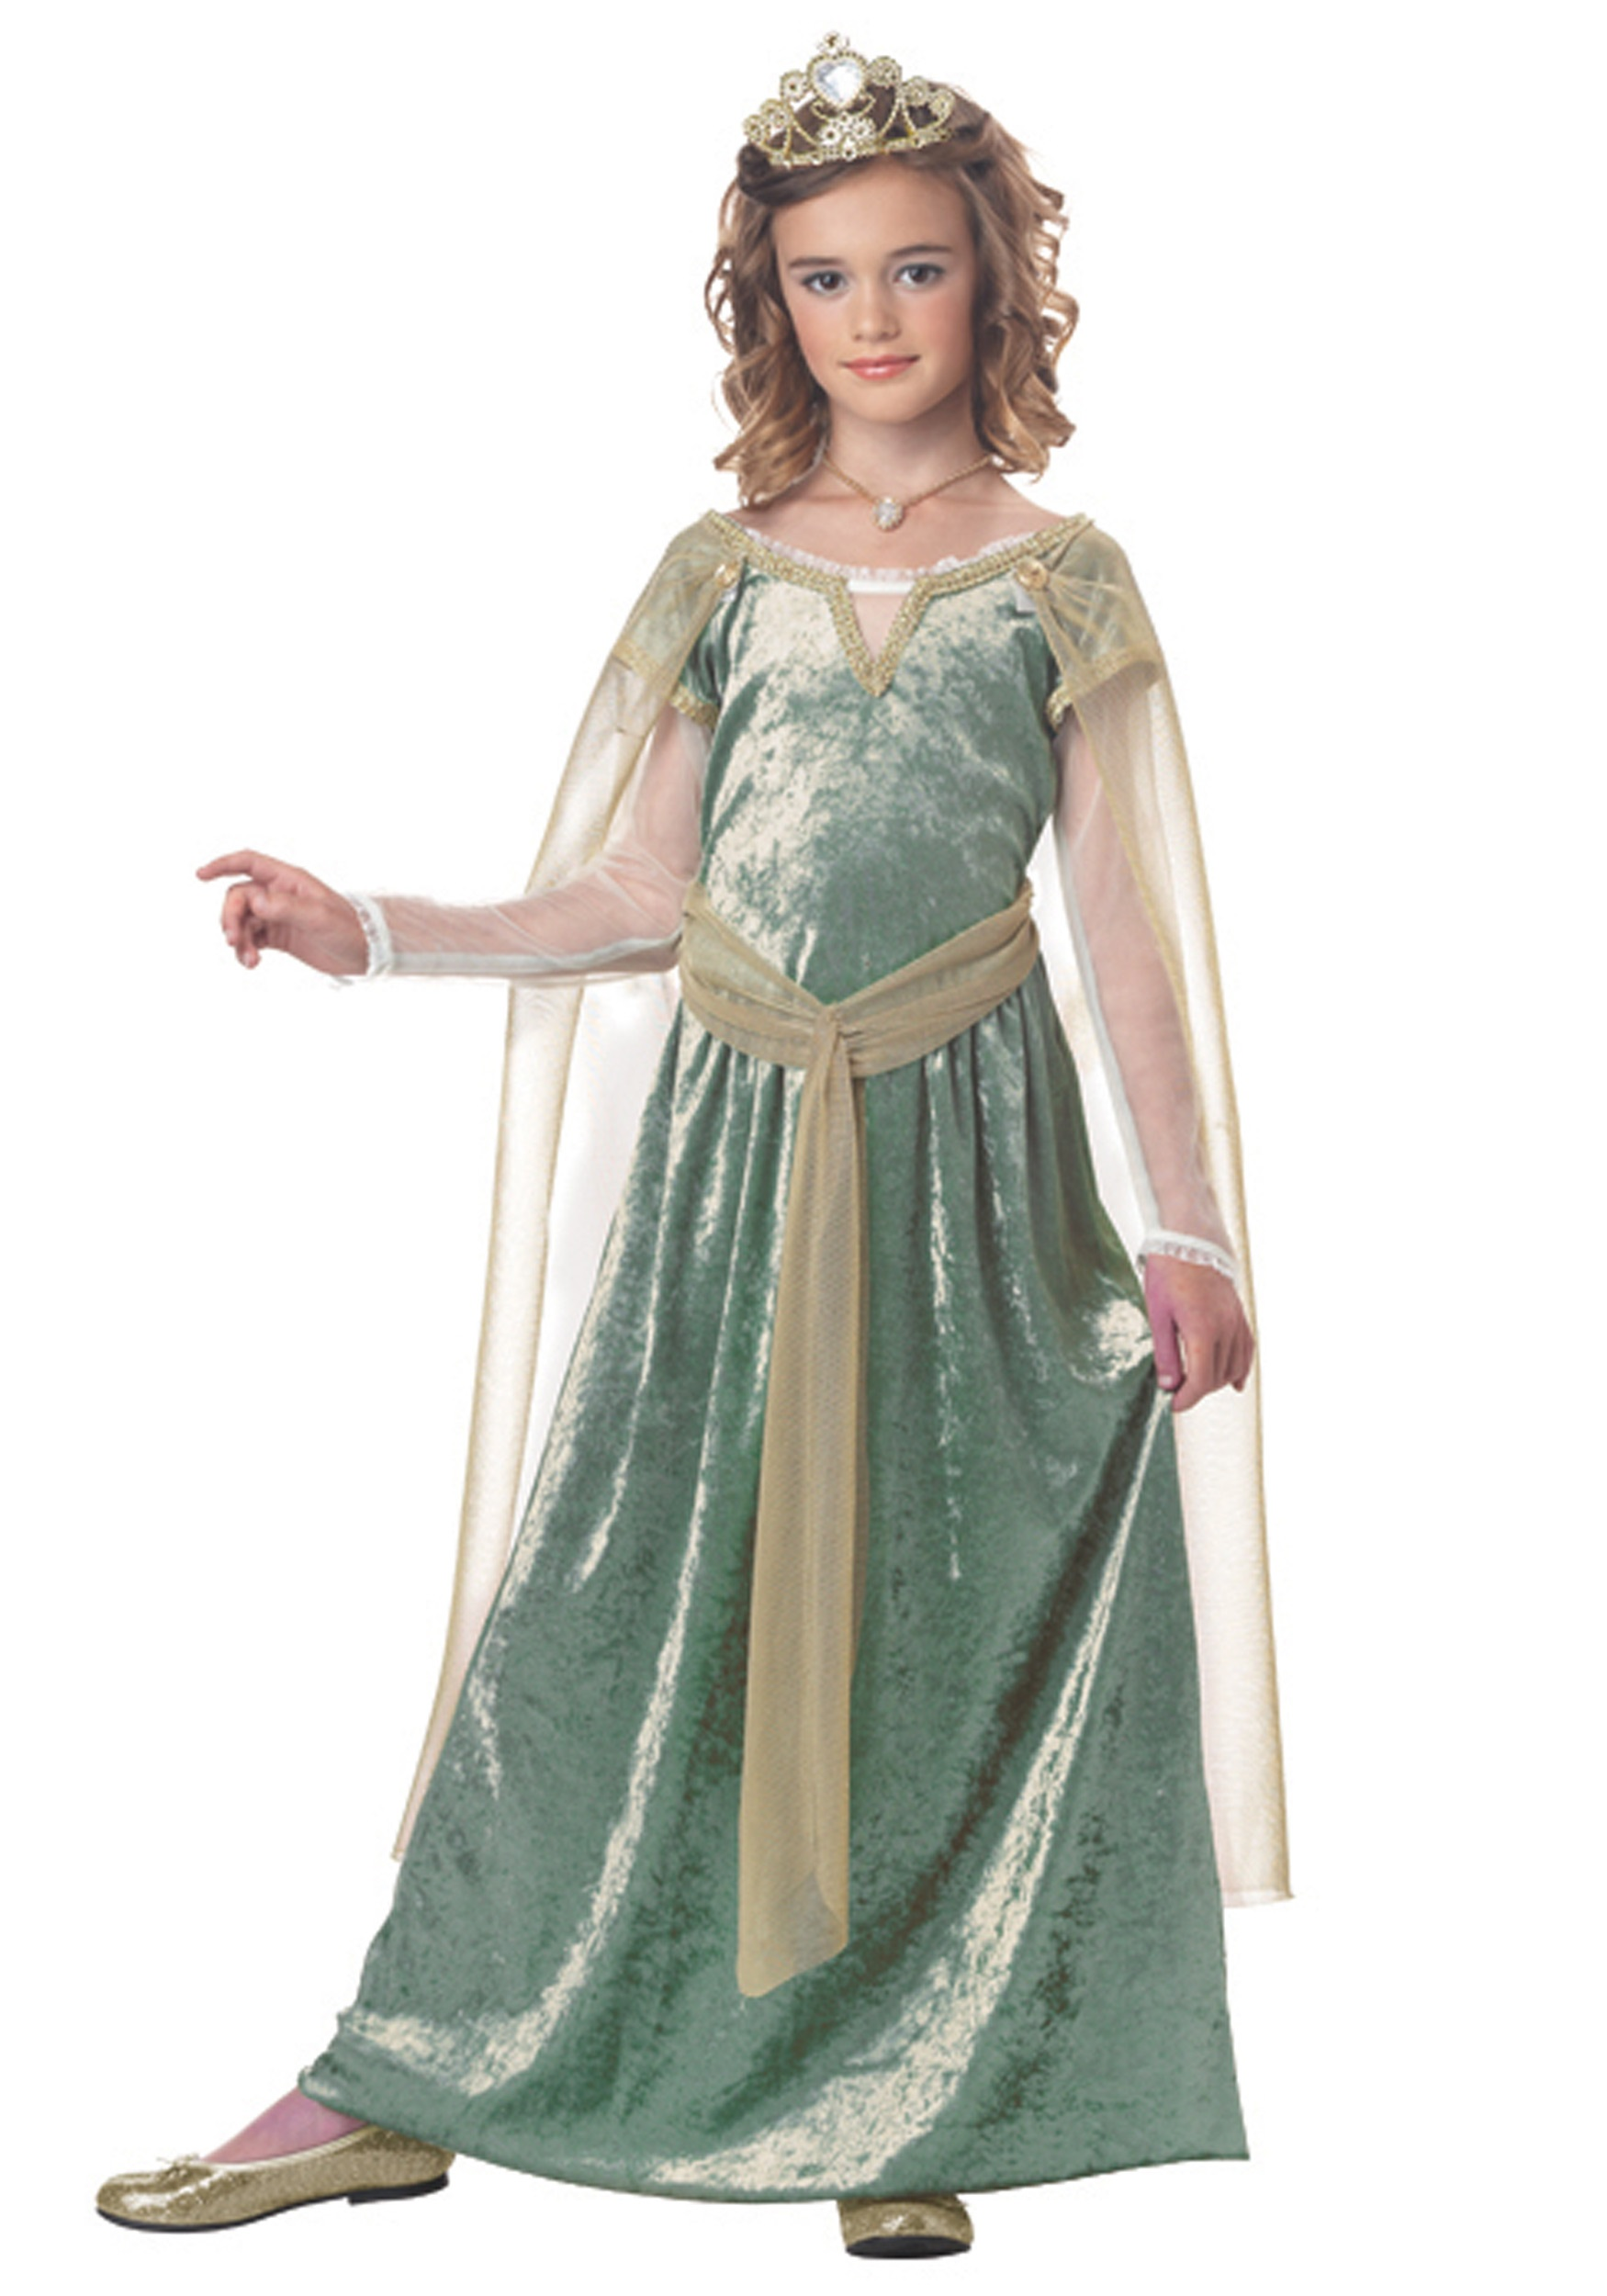 Child Queen Guinevere Costume